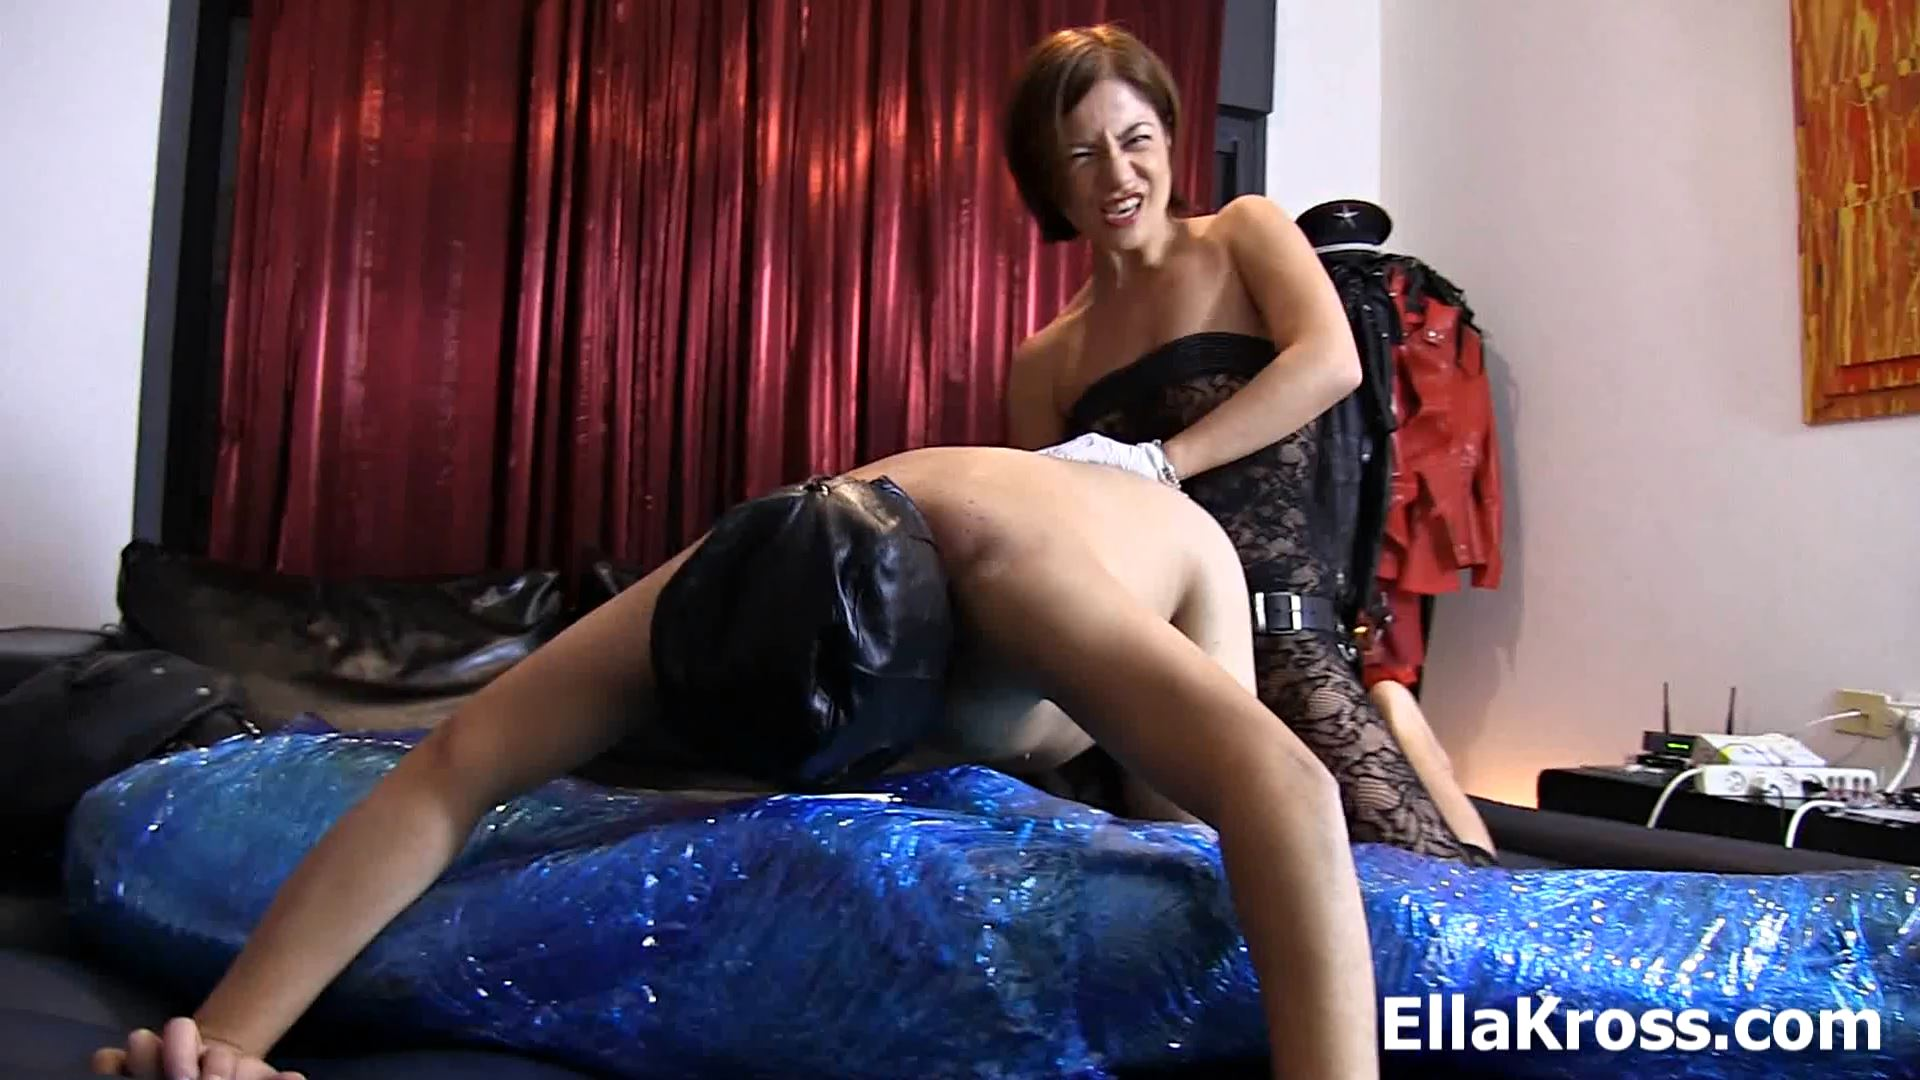 Mistress Ella Kross In Scene: Making a Slave Suck Cock and Fucking His Ass - ELLAKROSS - FULL HD/1080p/MP4